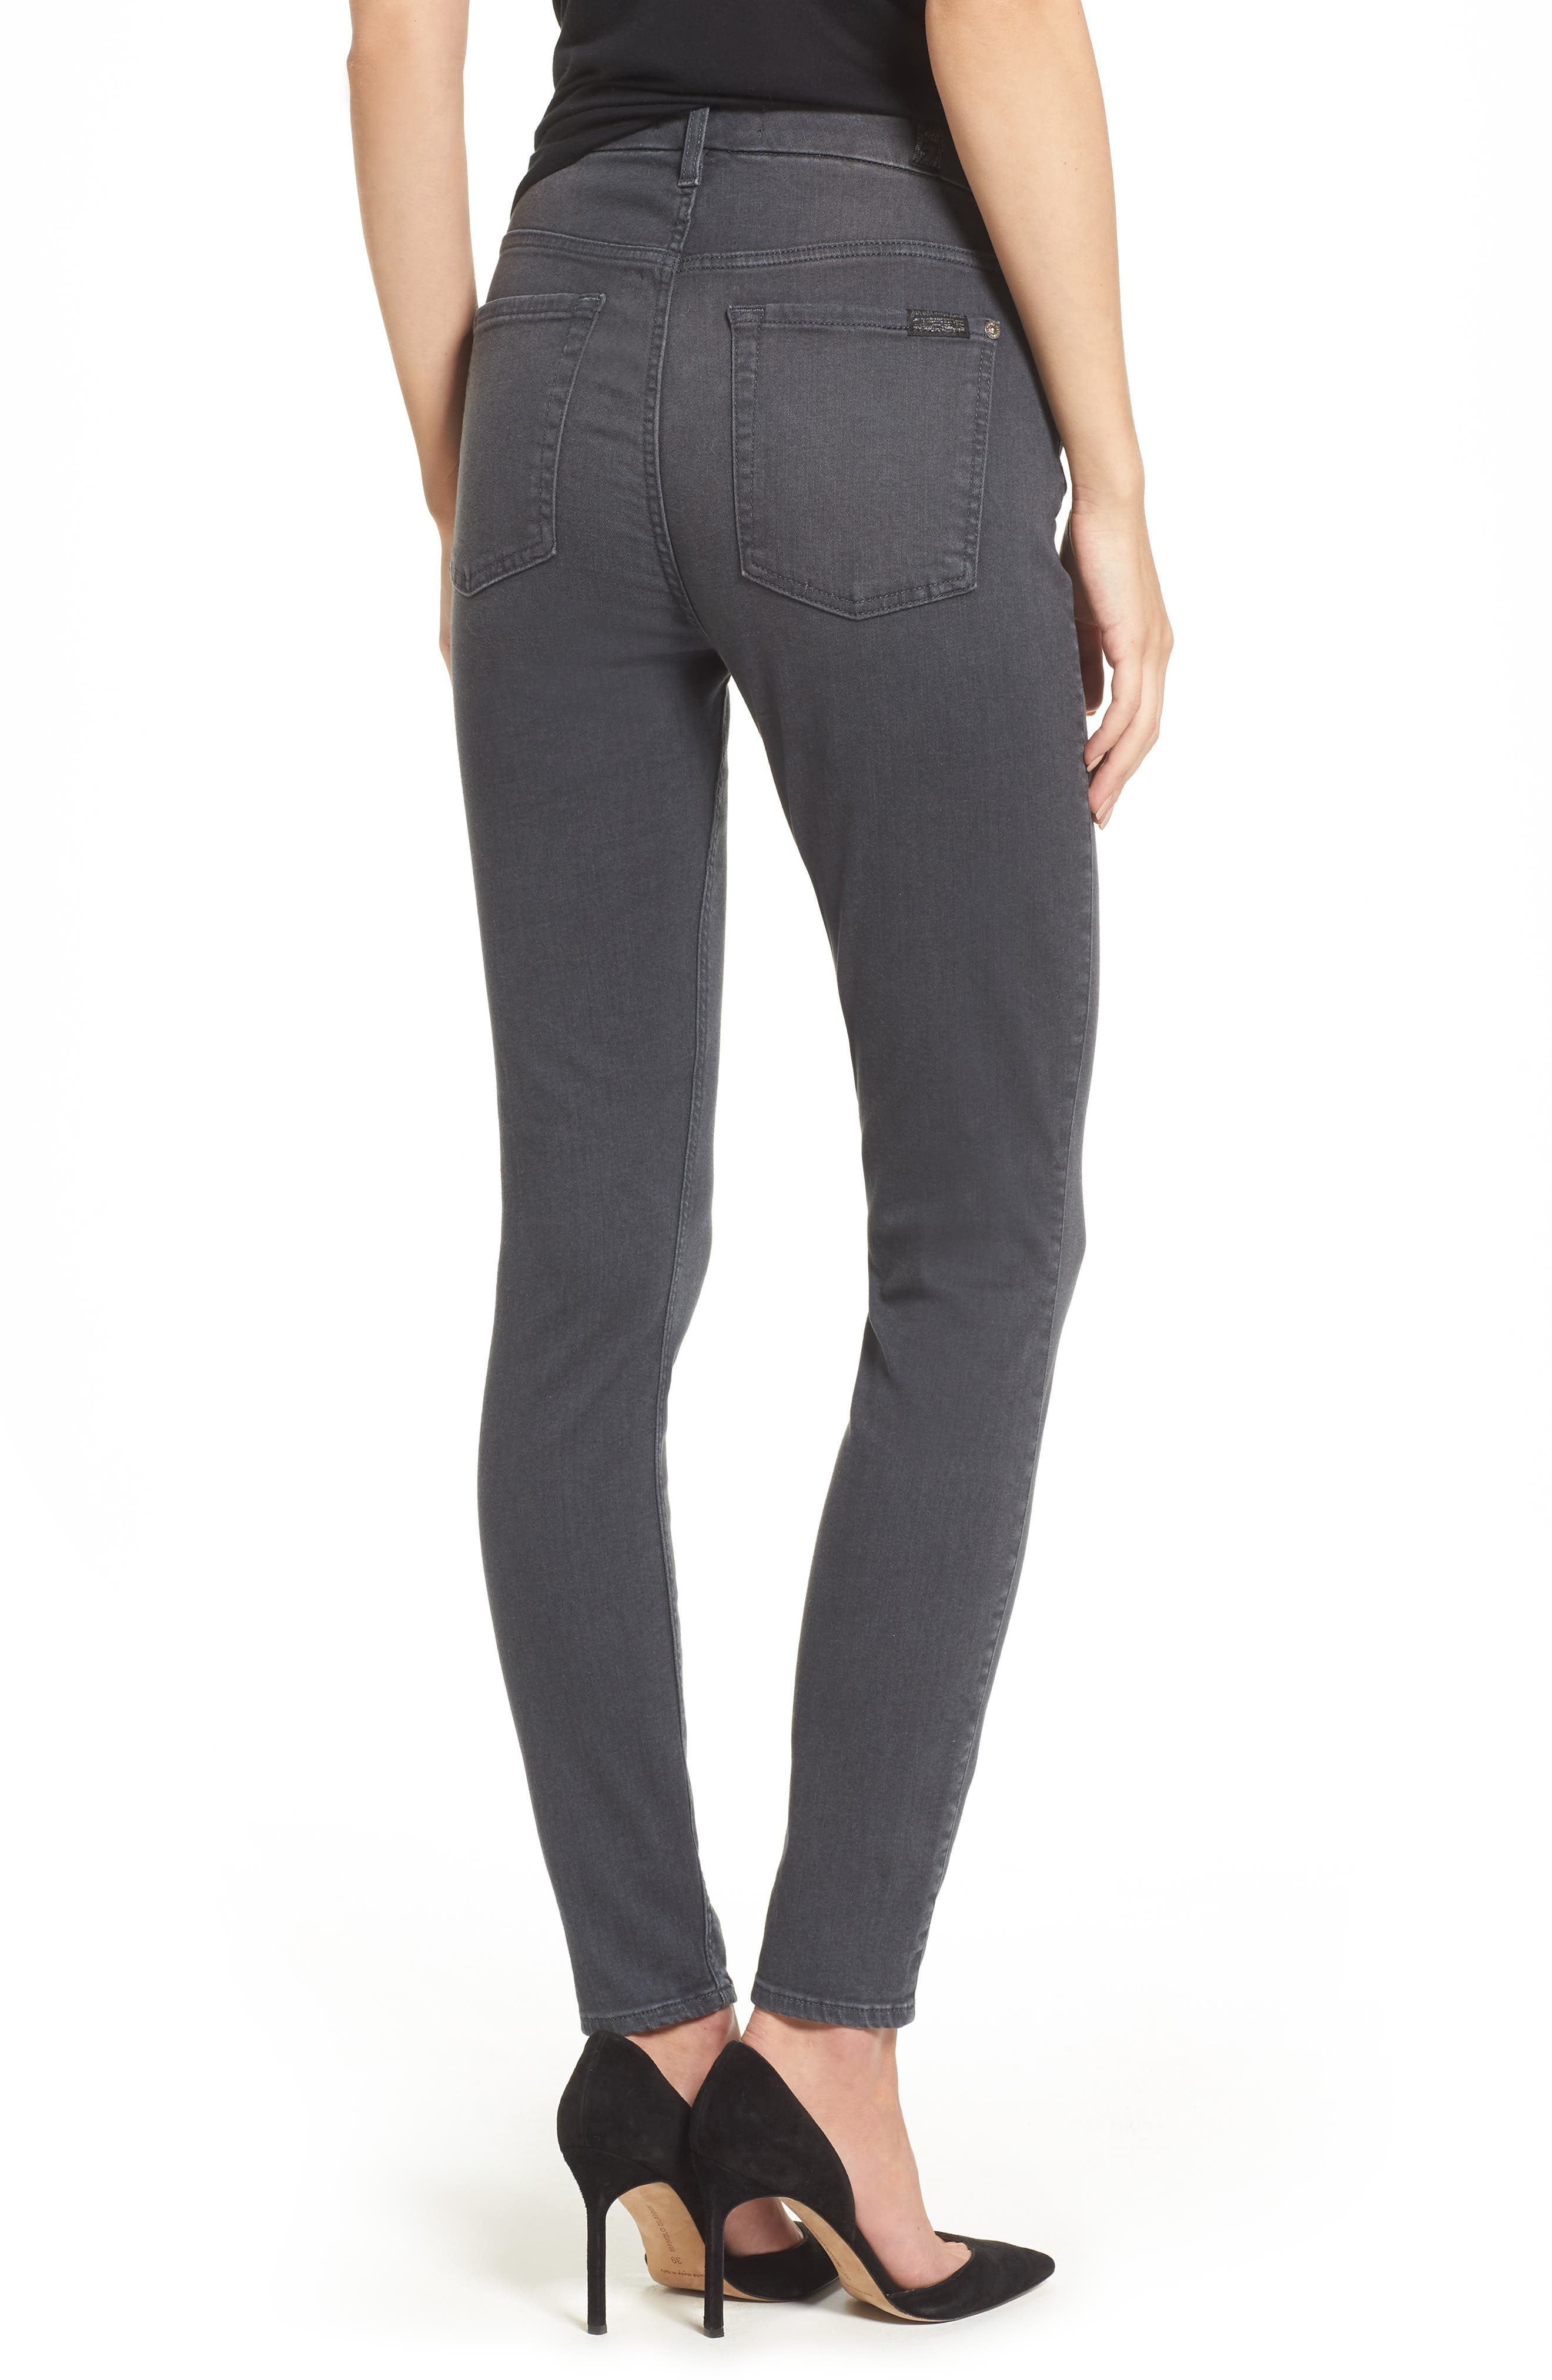 b(air) High Waist Ankle Skinny Jeans,                             Alternate thumbnail 2, color,                             024